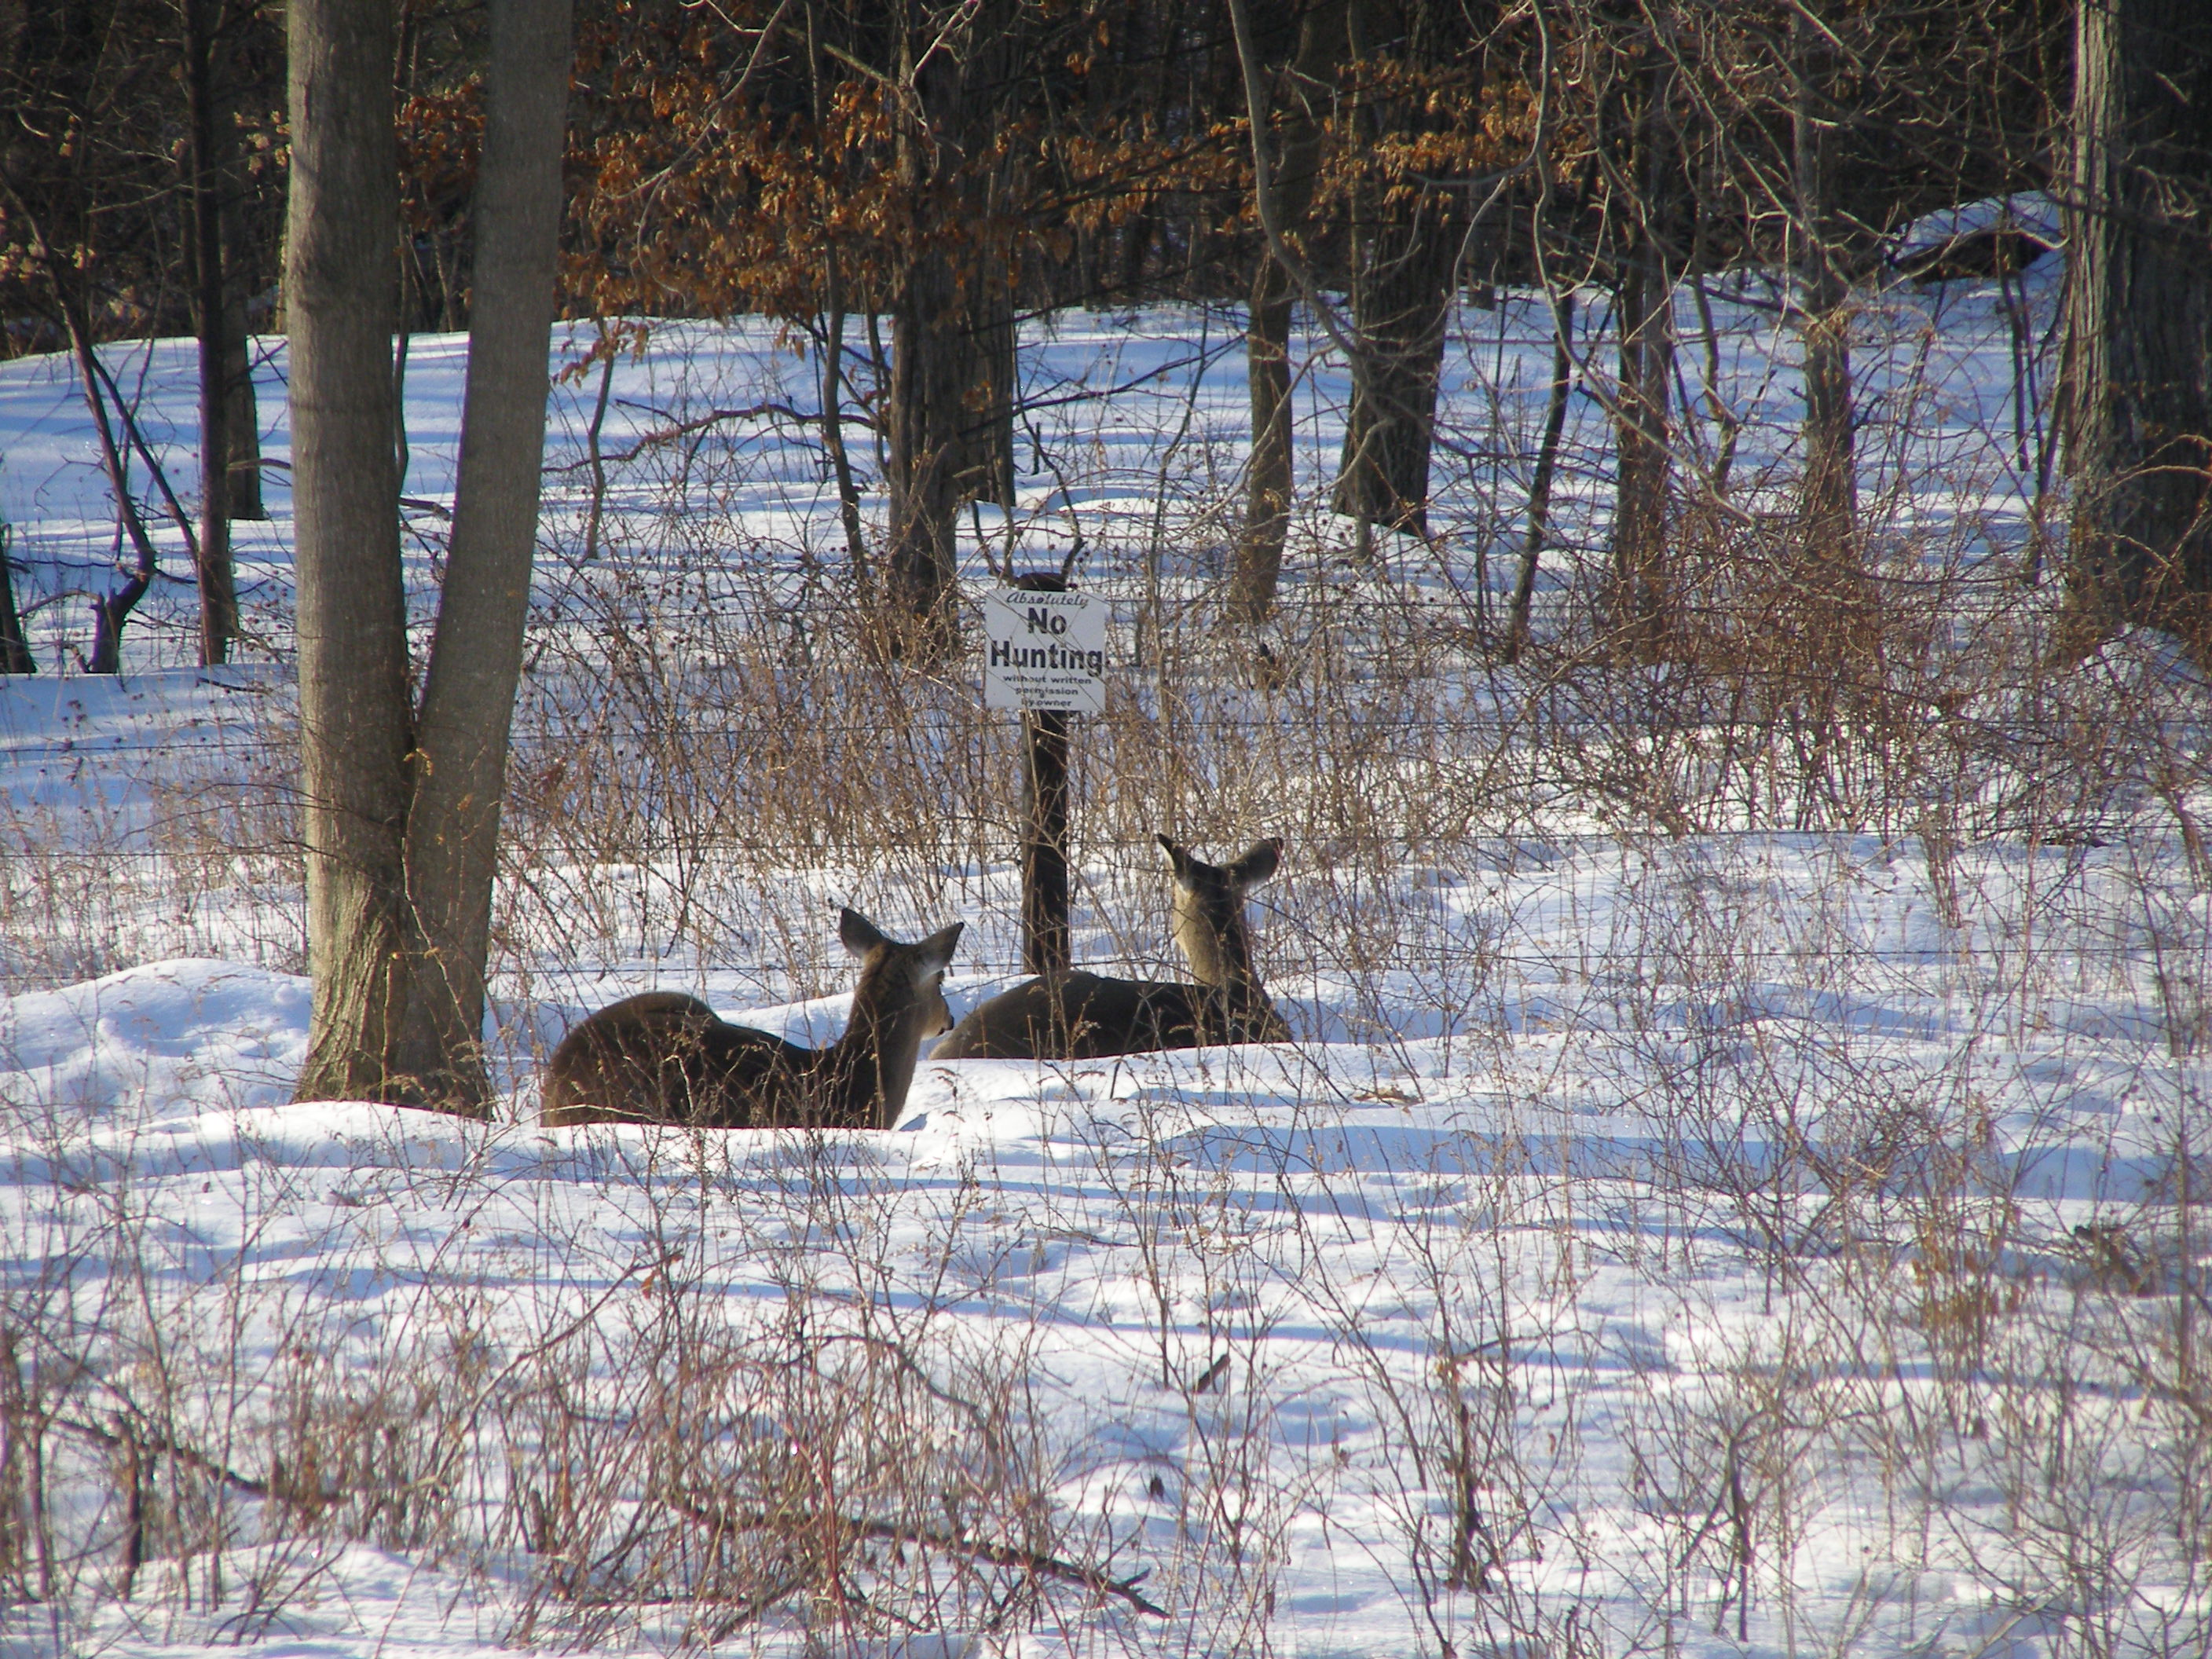 Deer reading No Hunting sign. Taken End of February In our backyard by Louis Manders.